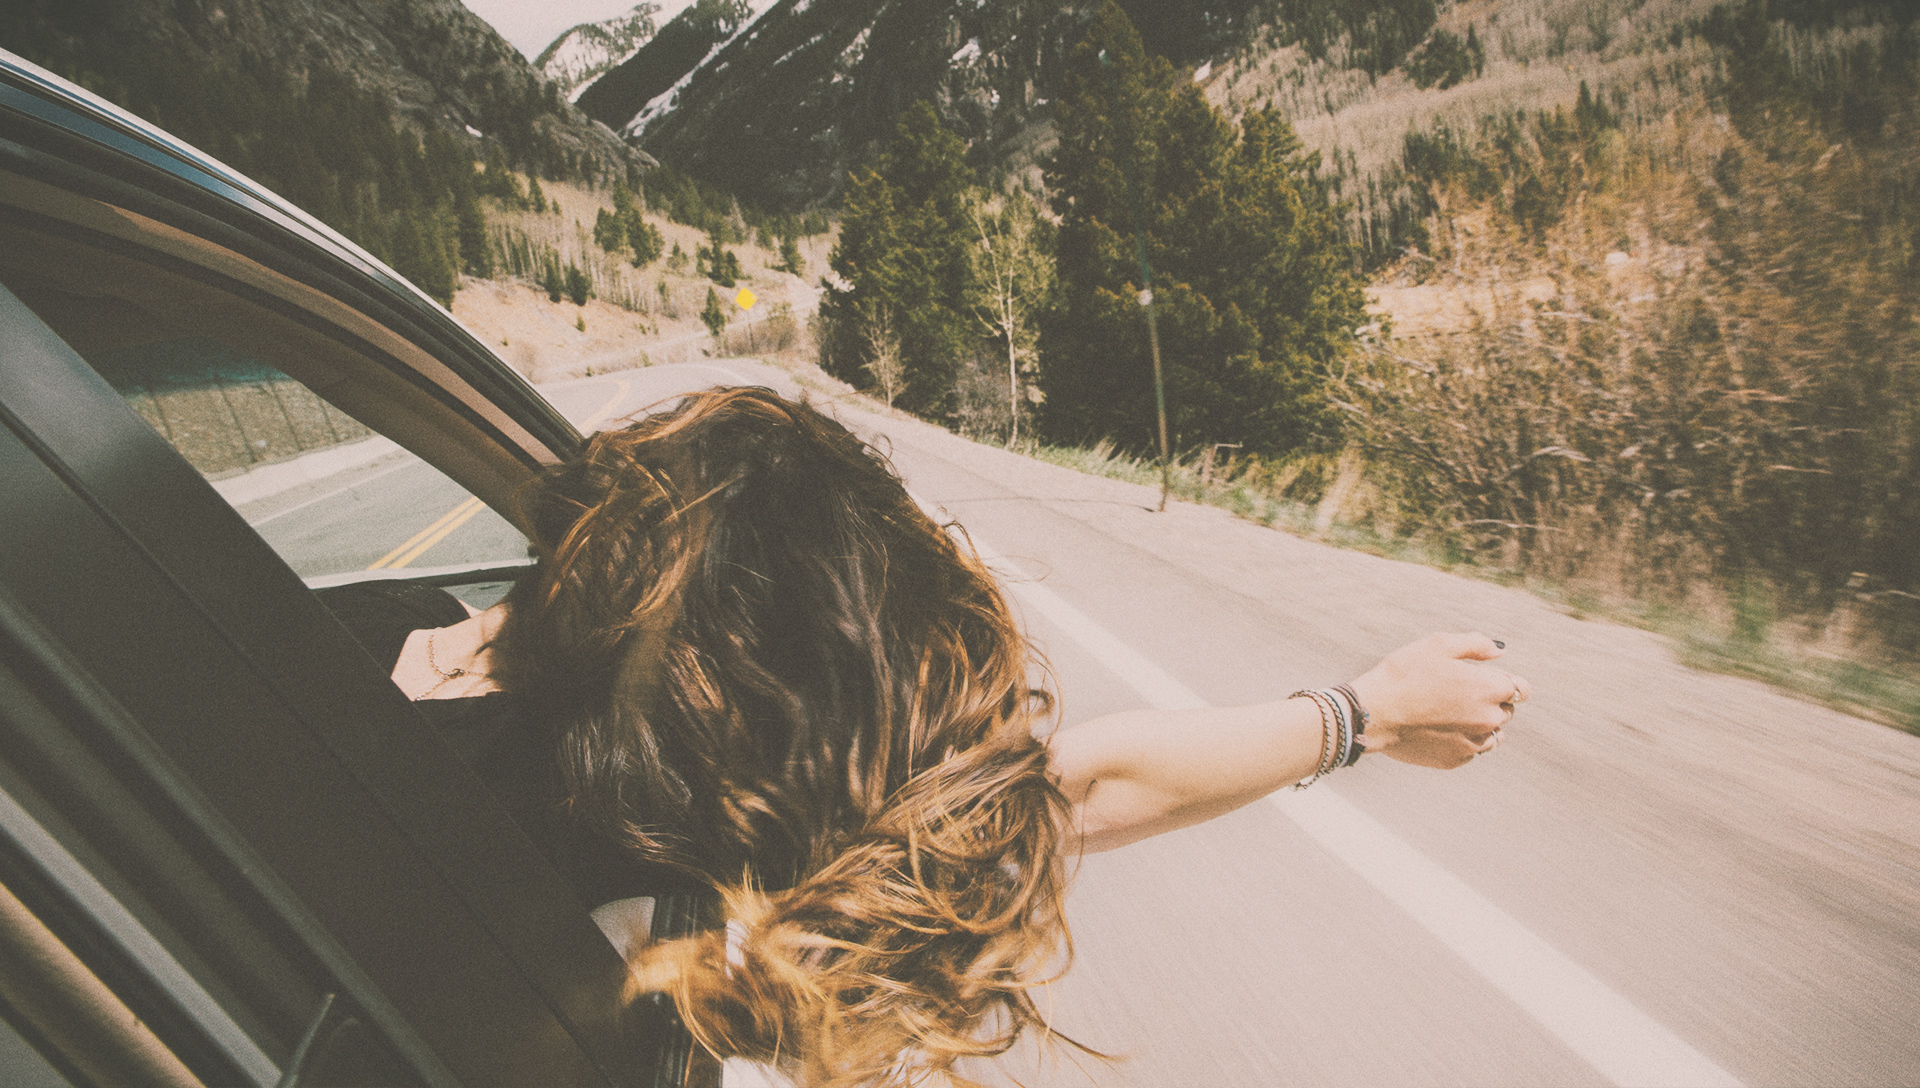 main image for HABAKKUK article on rejoicing, girl leaning out car window on highway